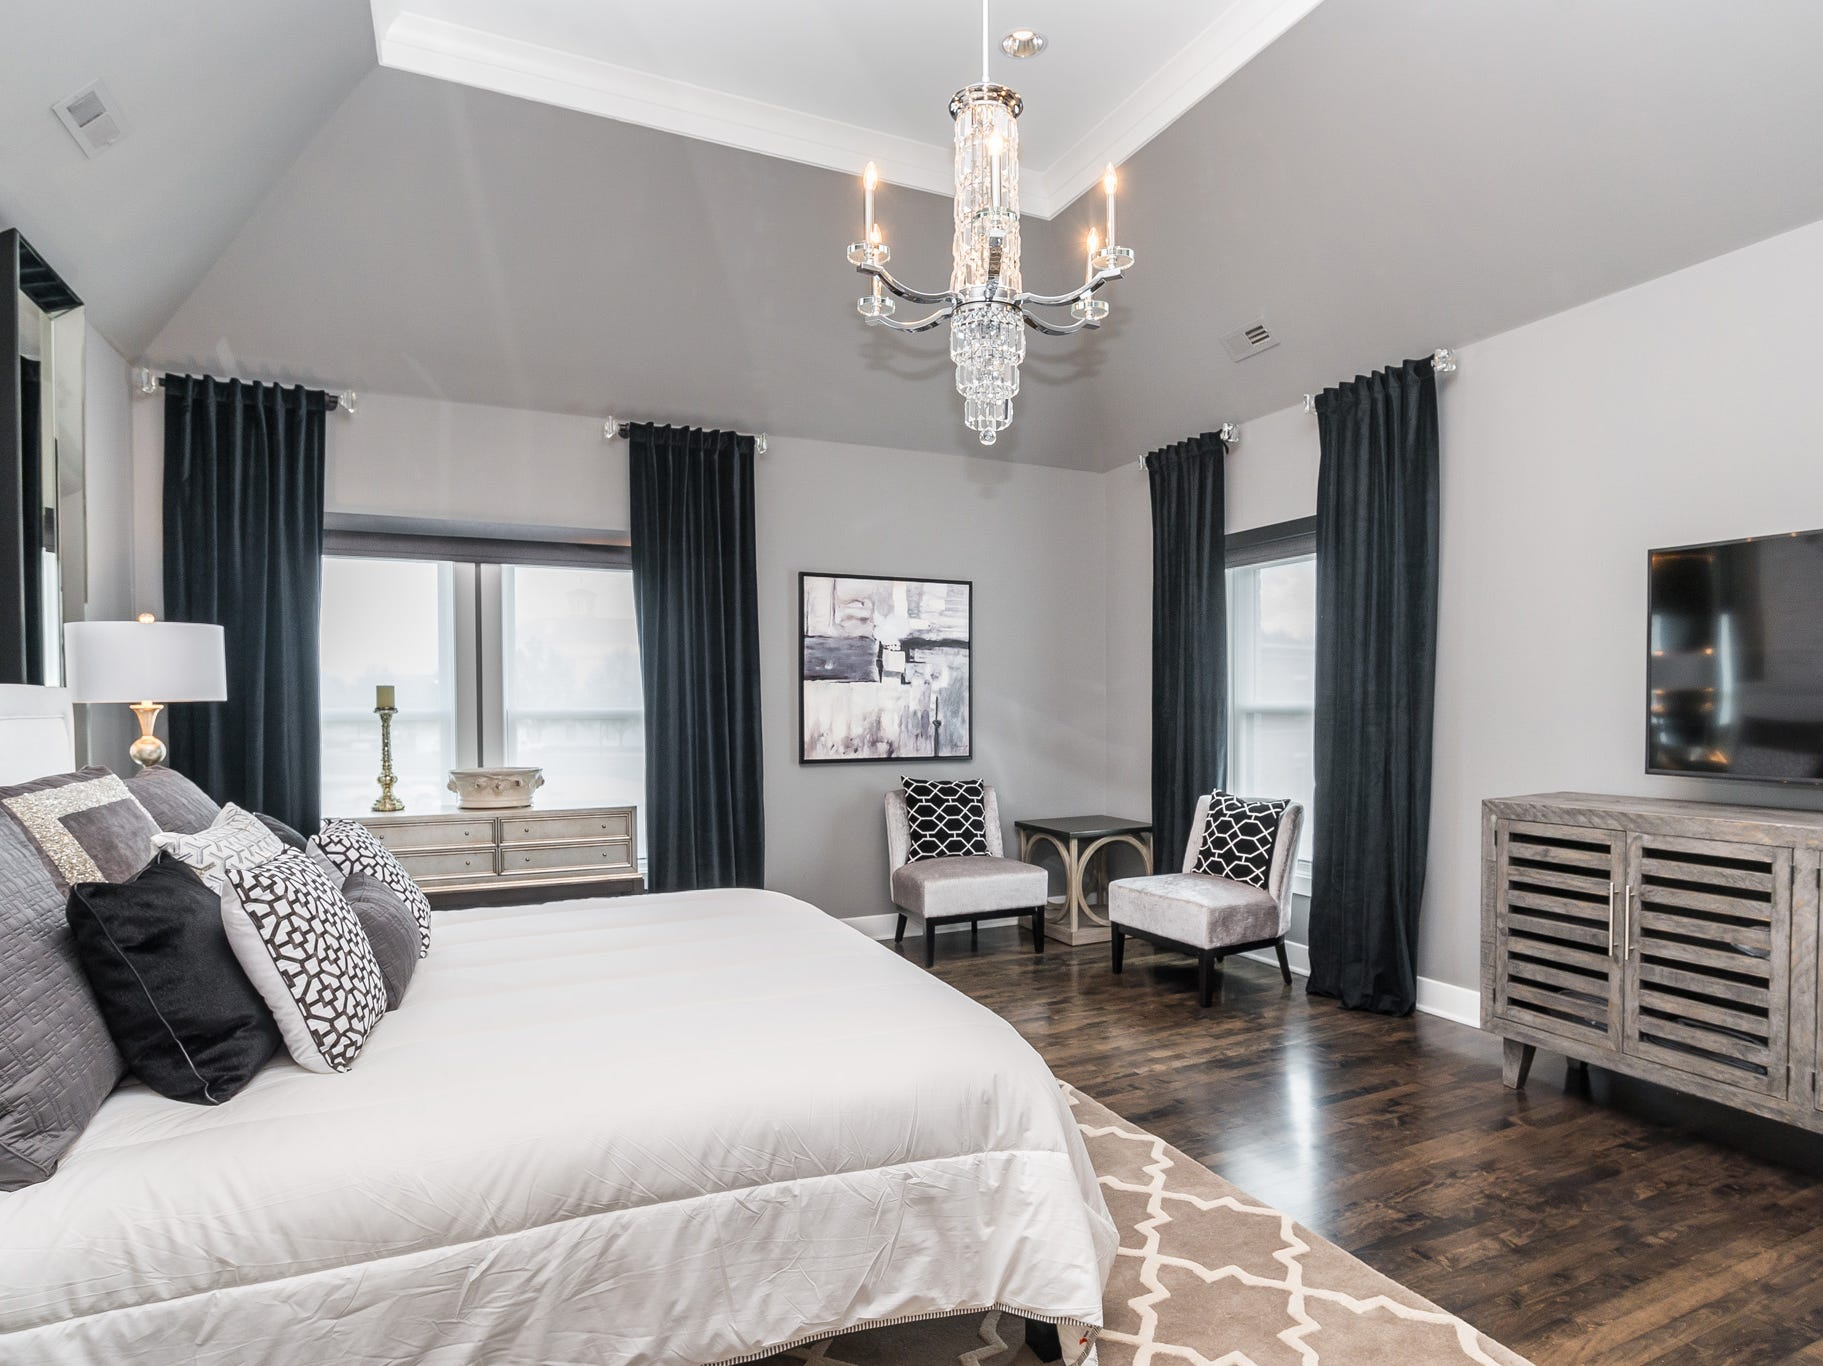 The master bedroom includes a small sitting area and 60-inch flatscreen television.